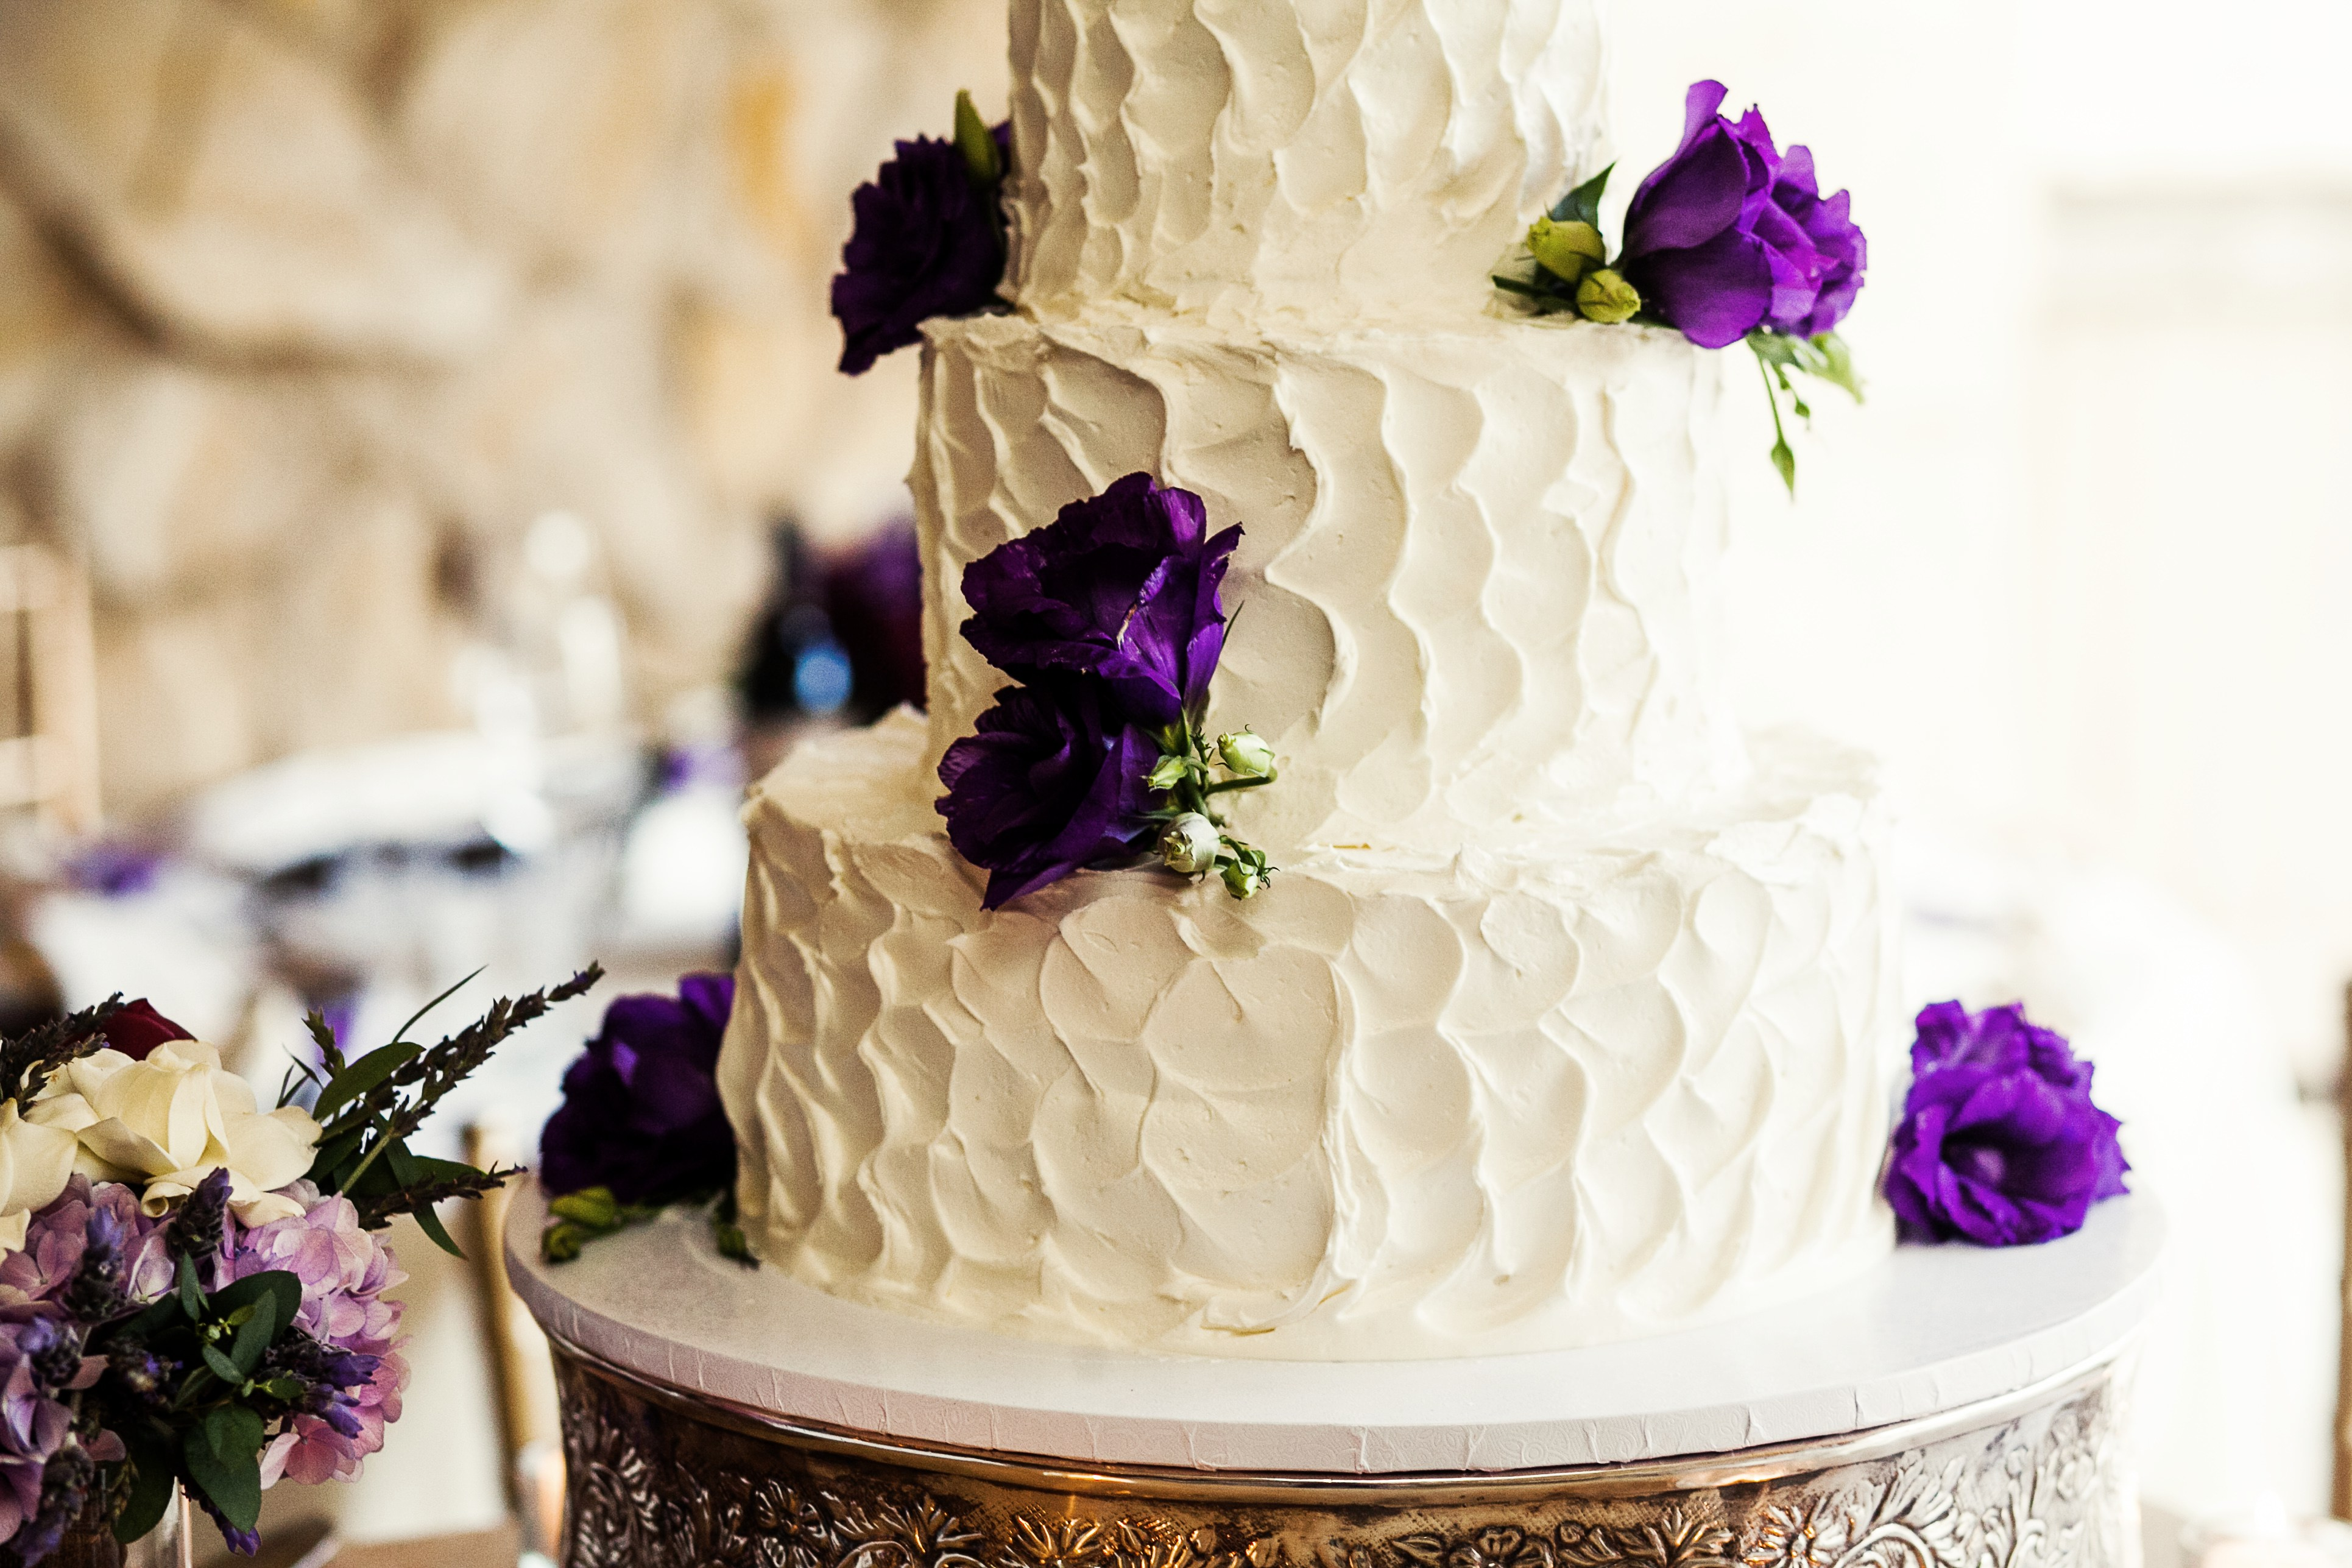 Solvang Bakery Wedding Cake